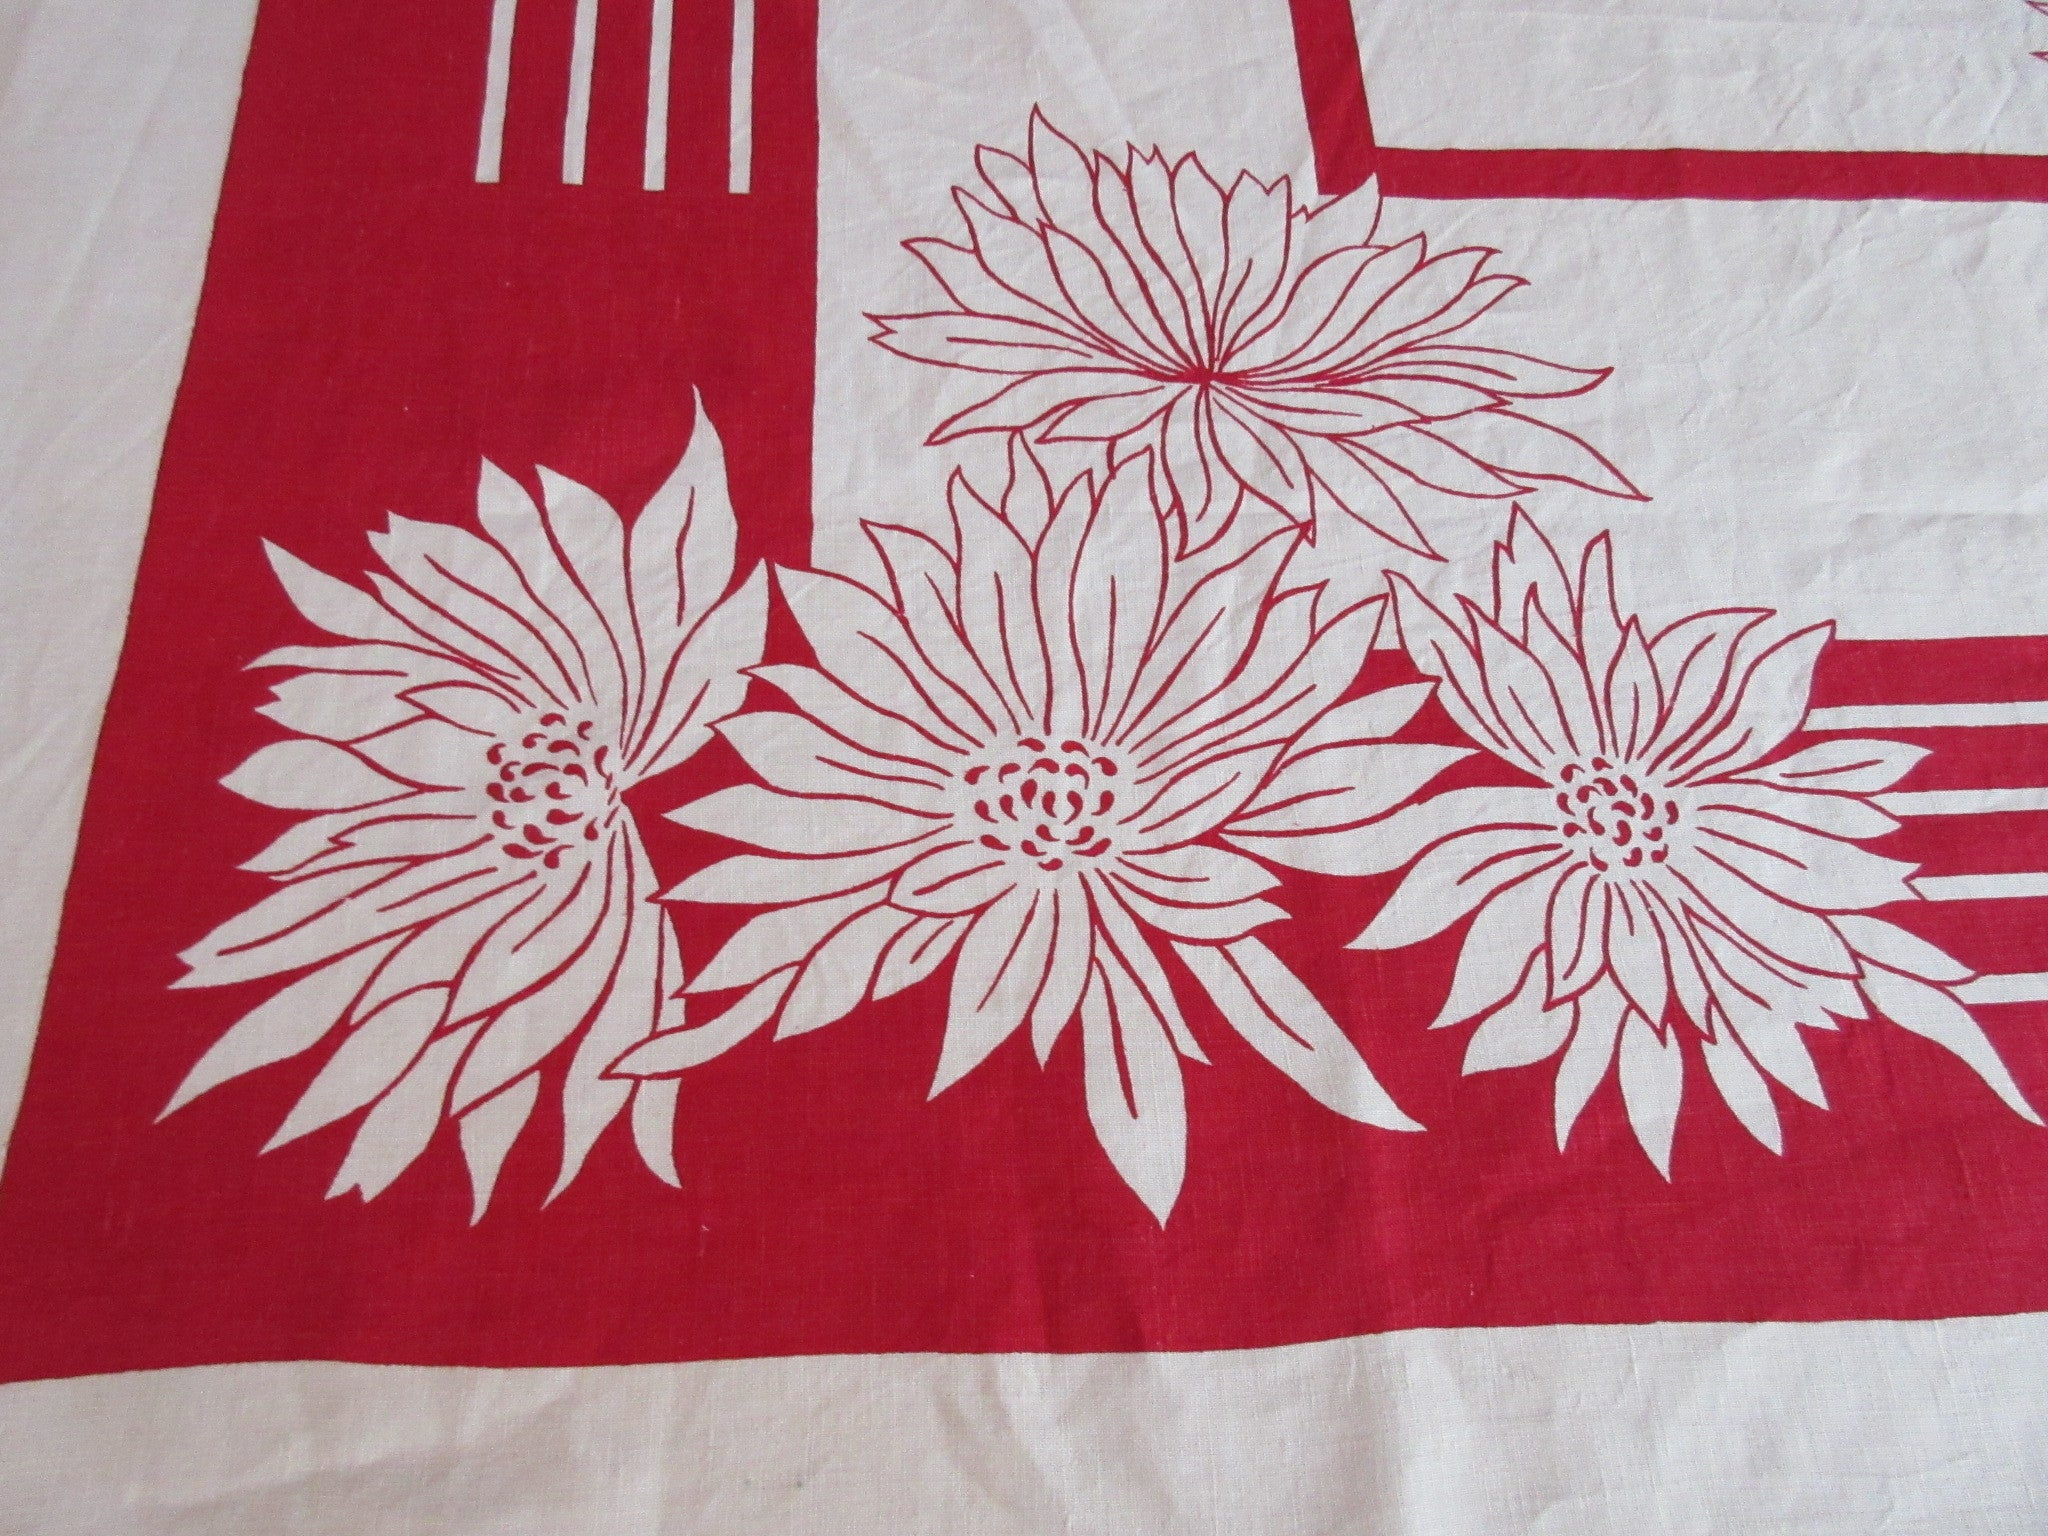 Red Daisies Linen NWT Napkins E/S Floral Vintage Printed Tablecloth (68 X 54)